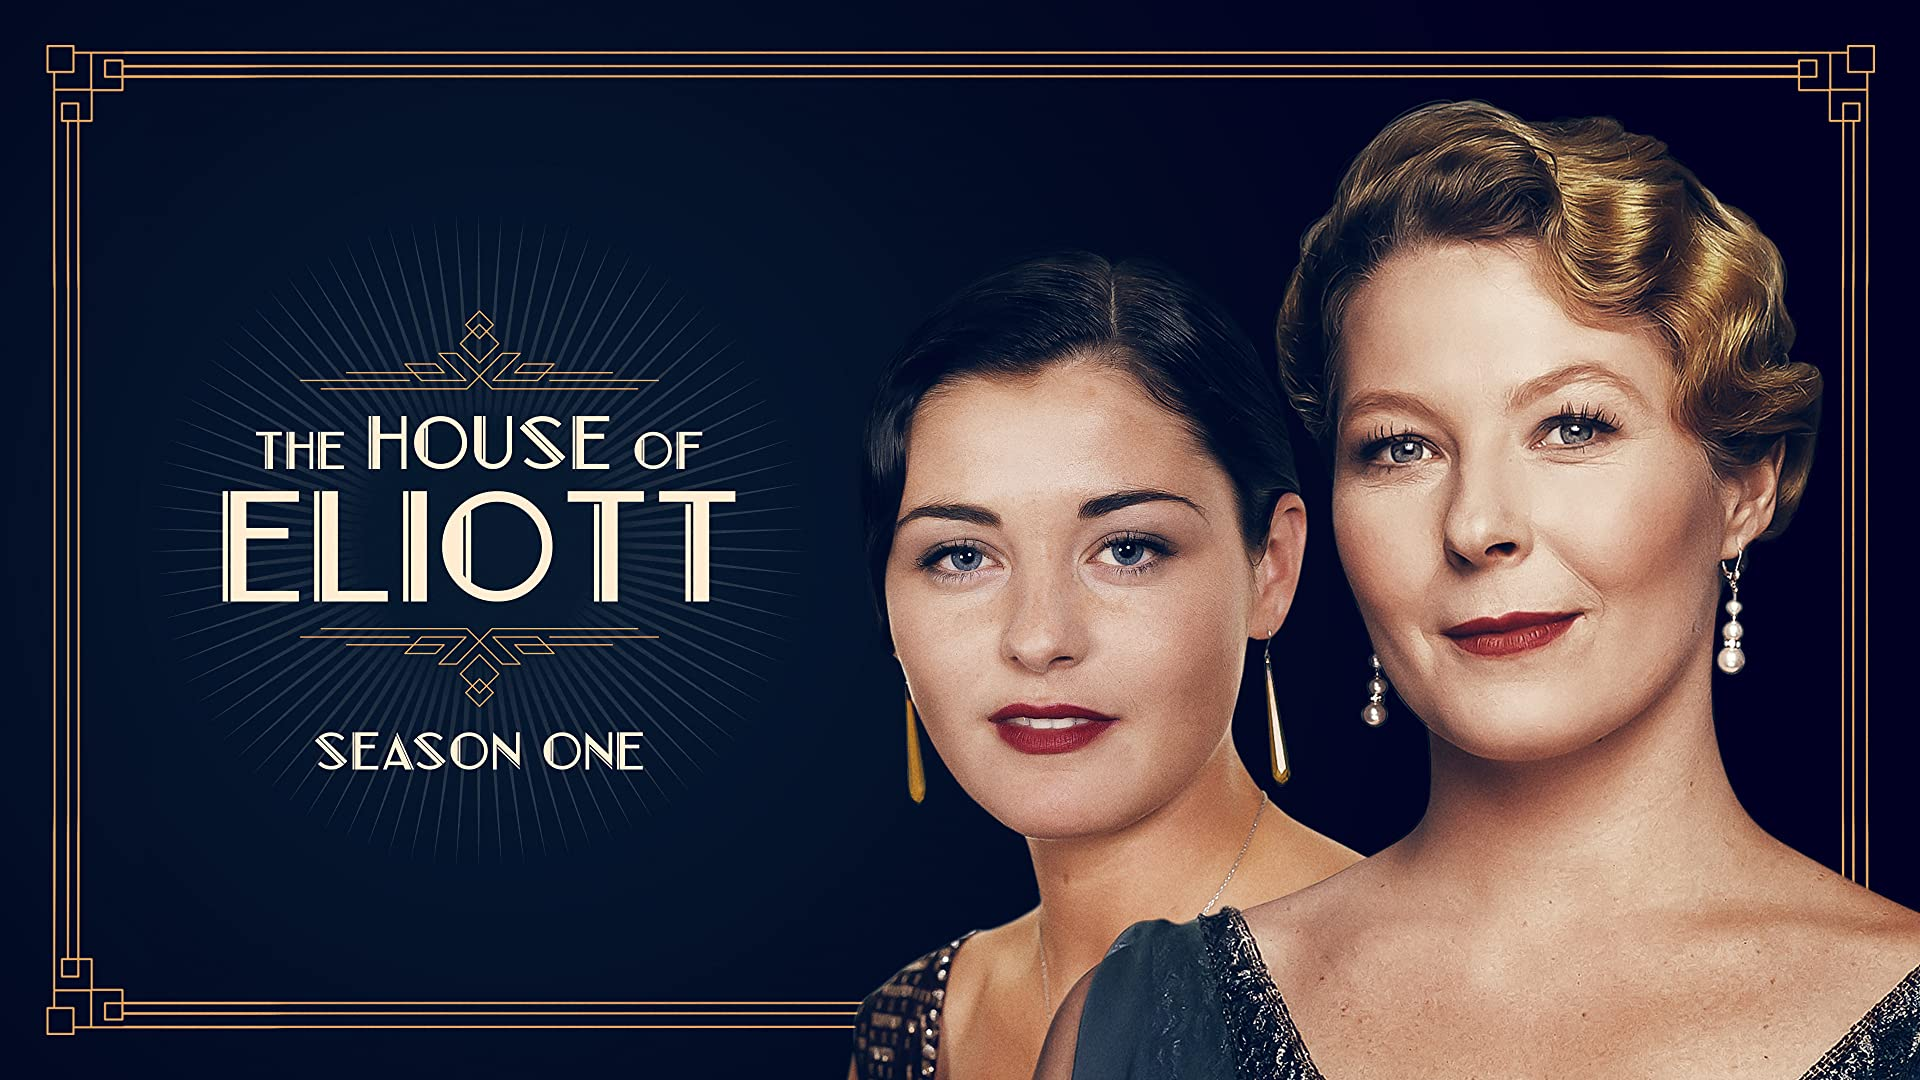 The House of Eliott, Season 1